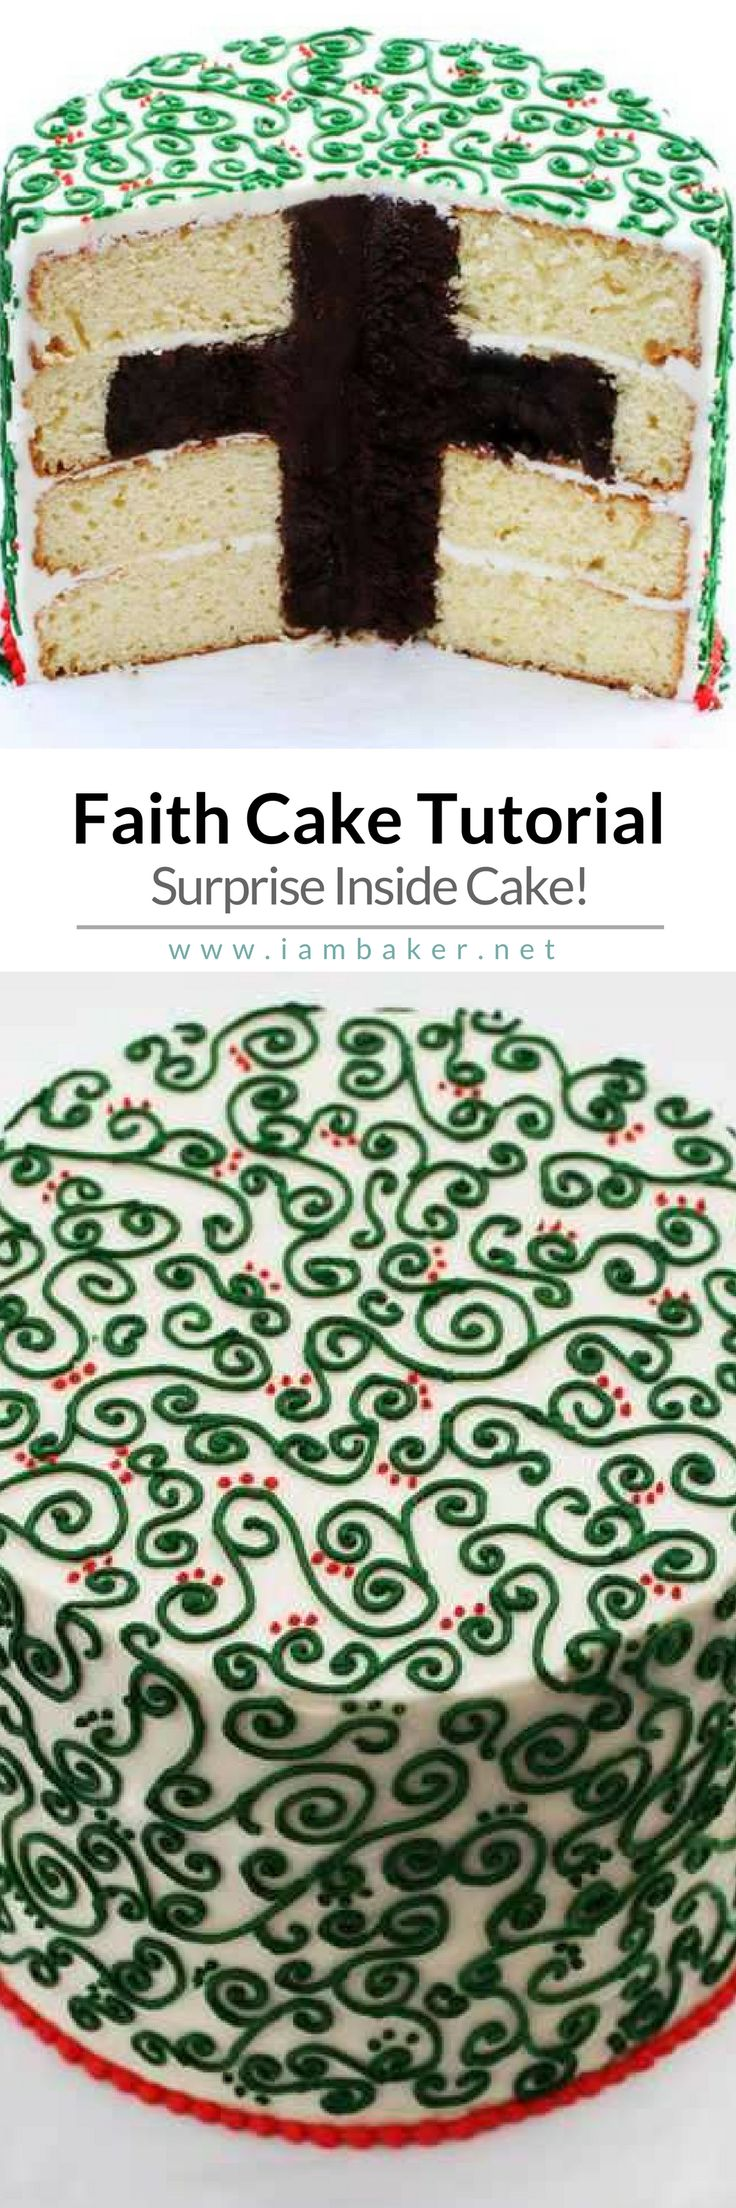 Here's one of the simple and easy dessert recipes from @iambaker- Faith Cake! Click to read the tutorial and create your own surprise inside cake! Visit #iambaker for more quick and easy dessert recipes to make. #cake